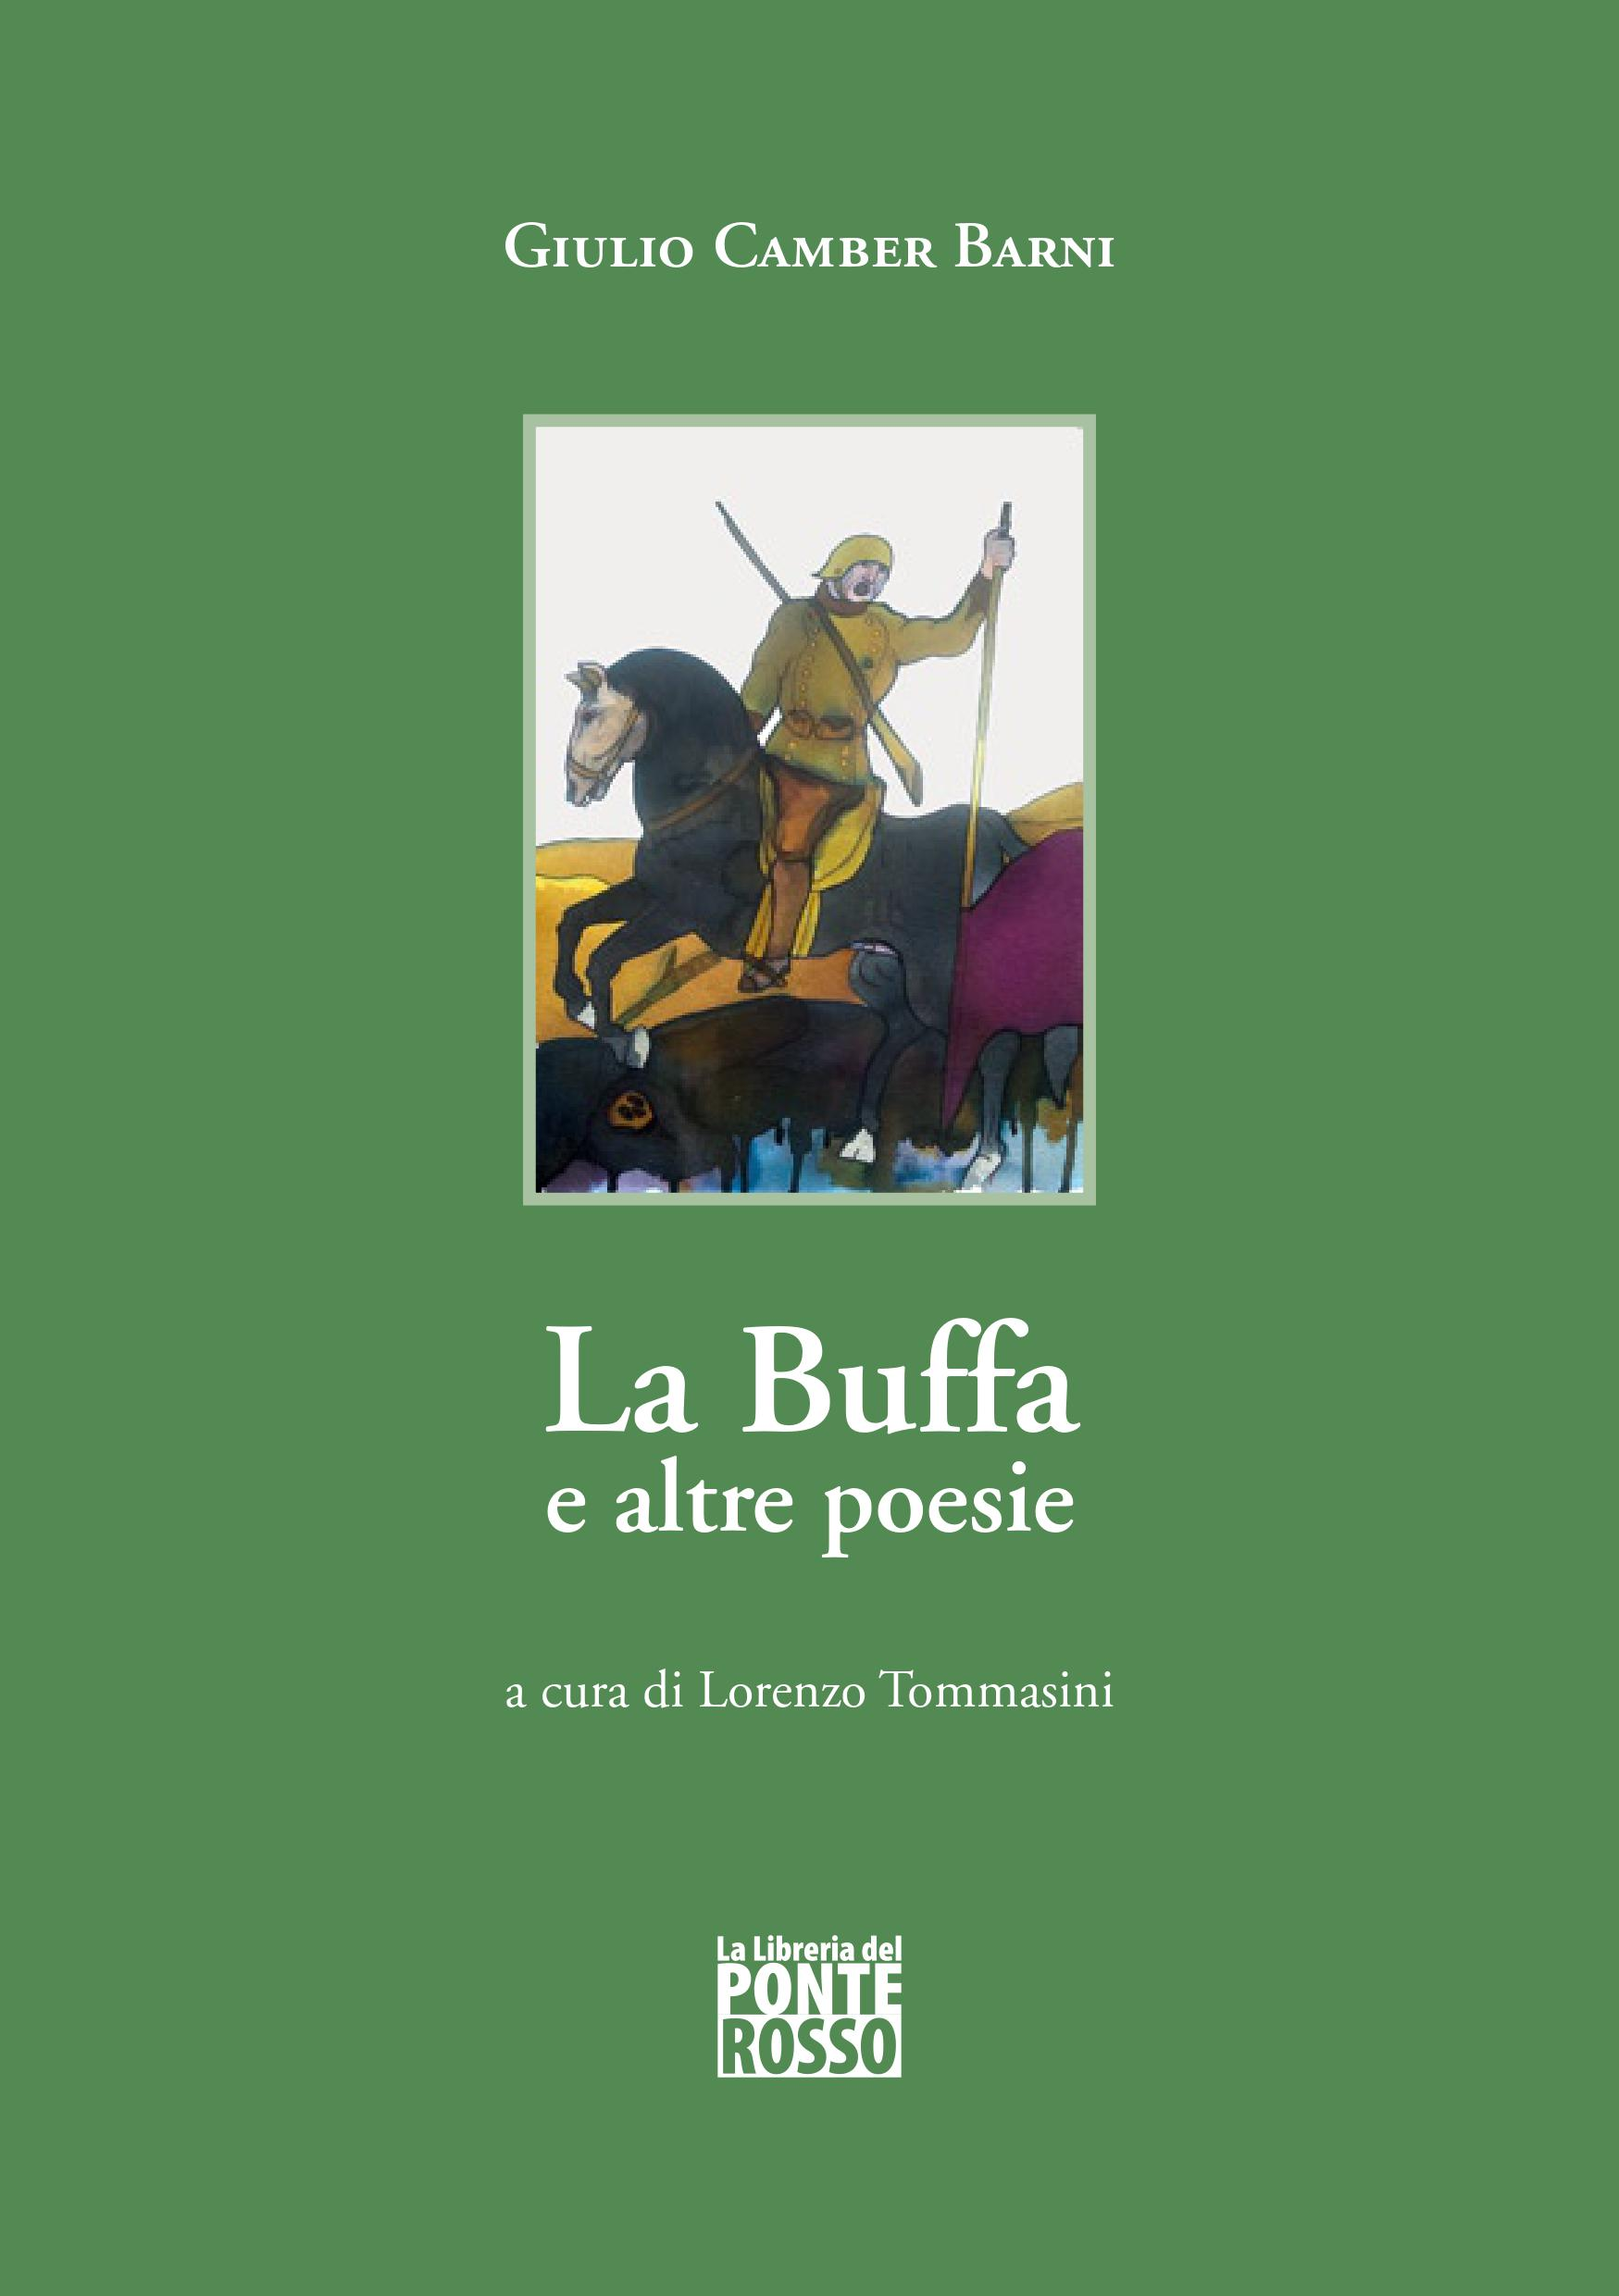 La Buffa e altre poesie Book Cover